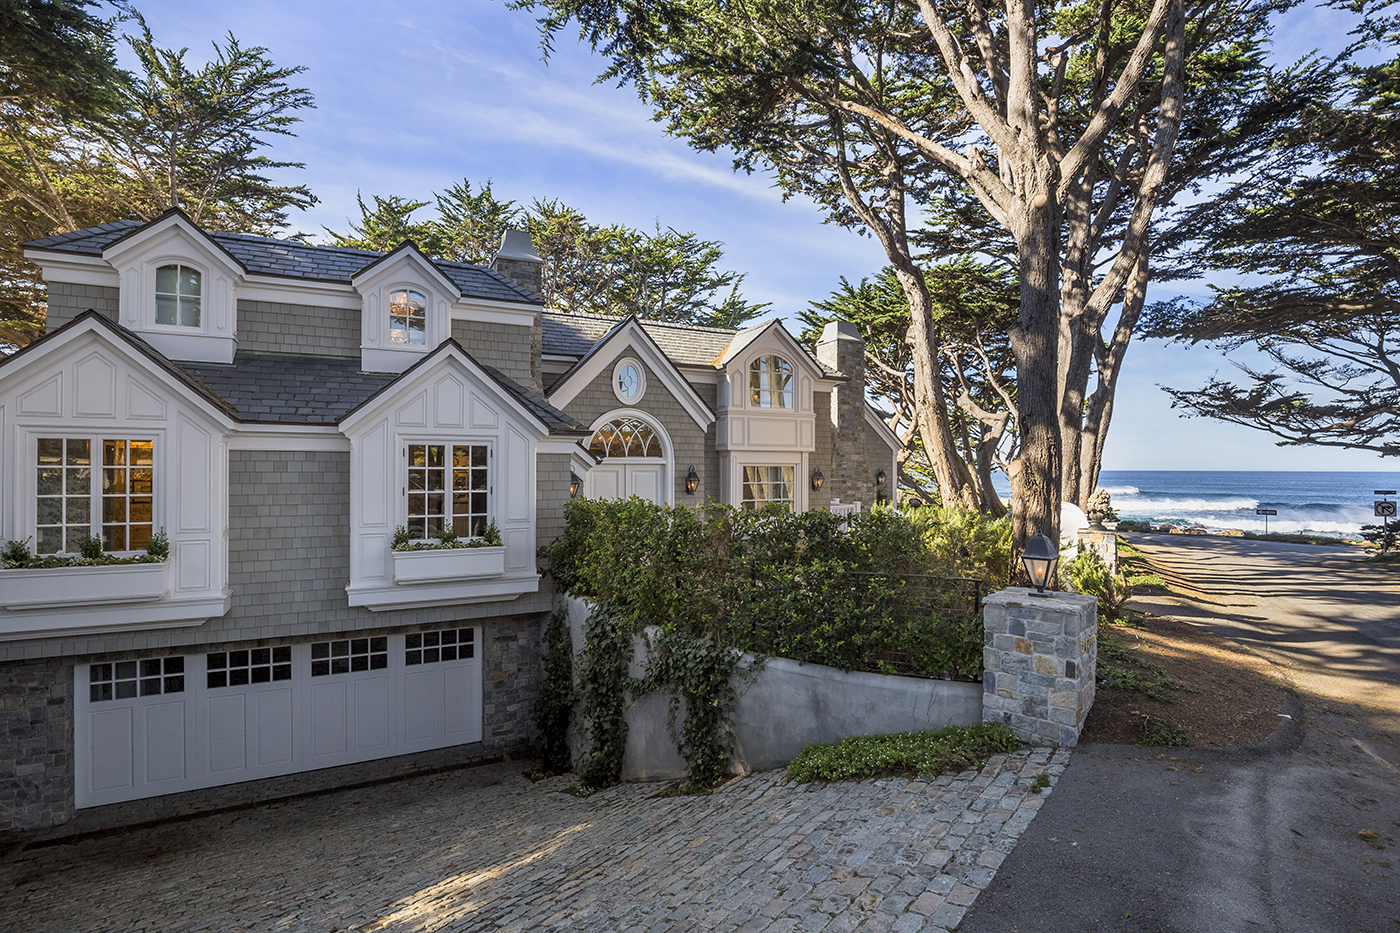 3 Ocean View - paver driveway and wood paneled bay windows and dormers.jpg